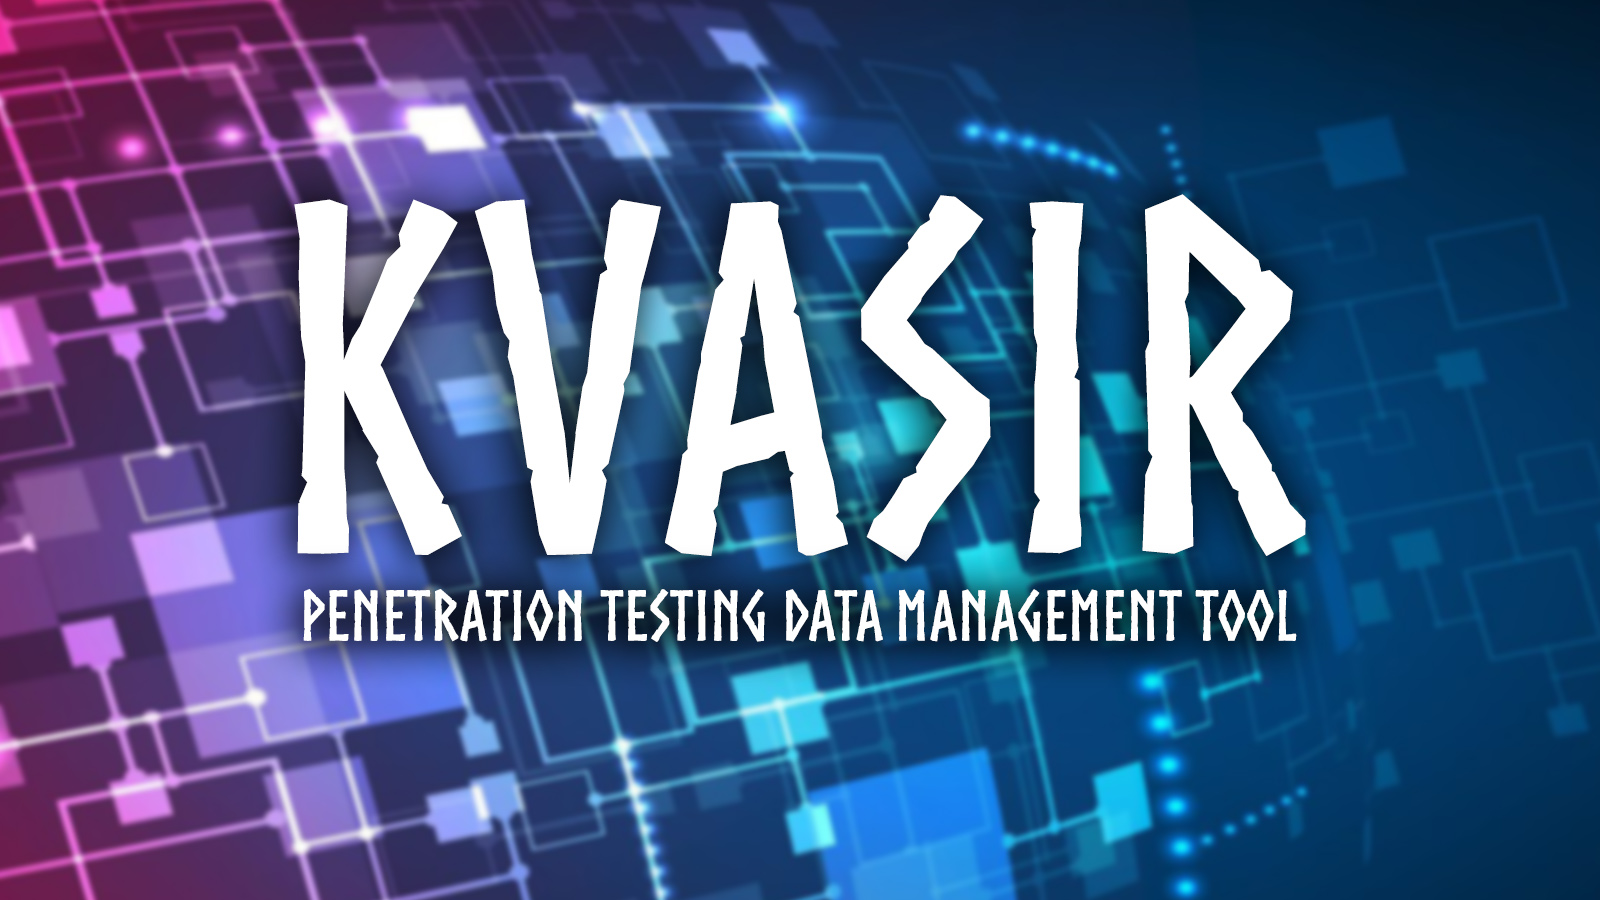 Kvasir Penetration Testing Data Management System